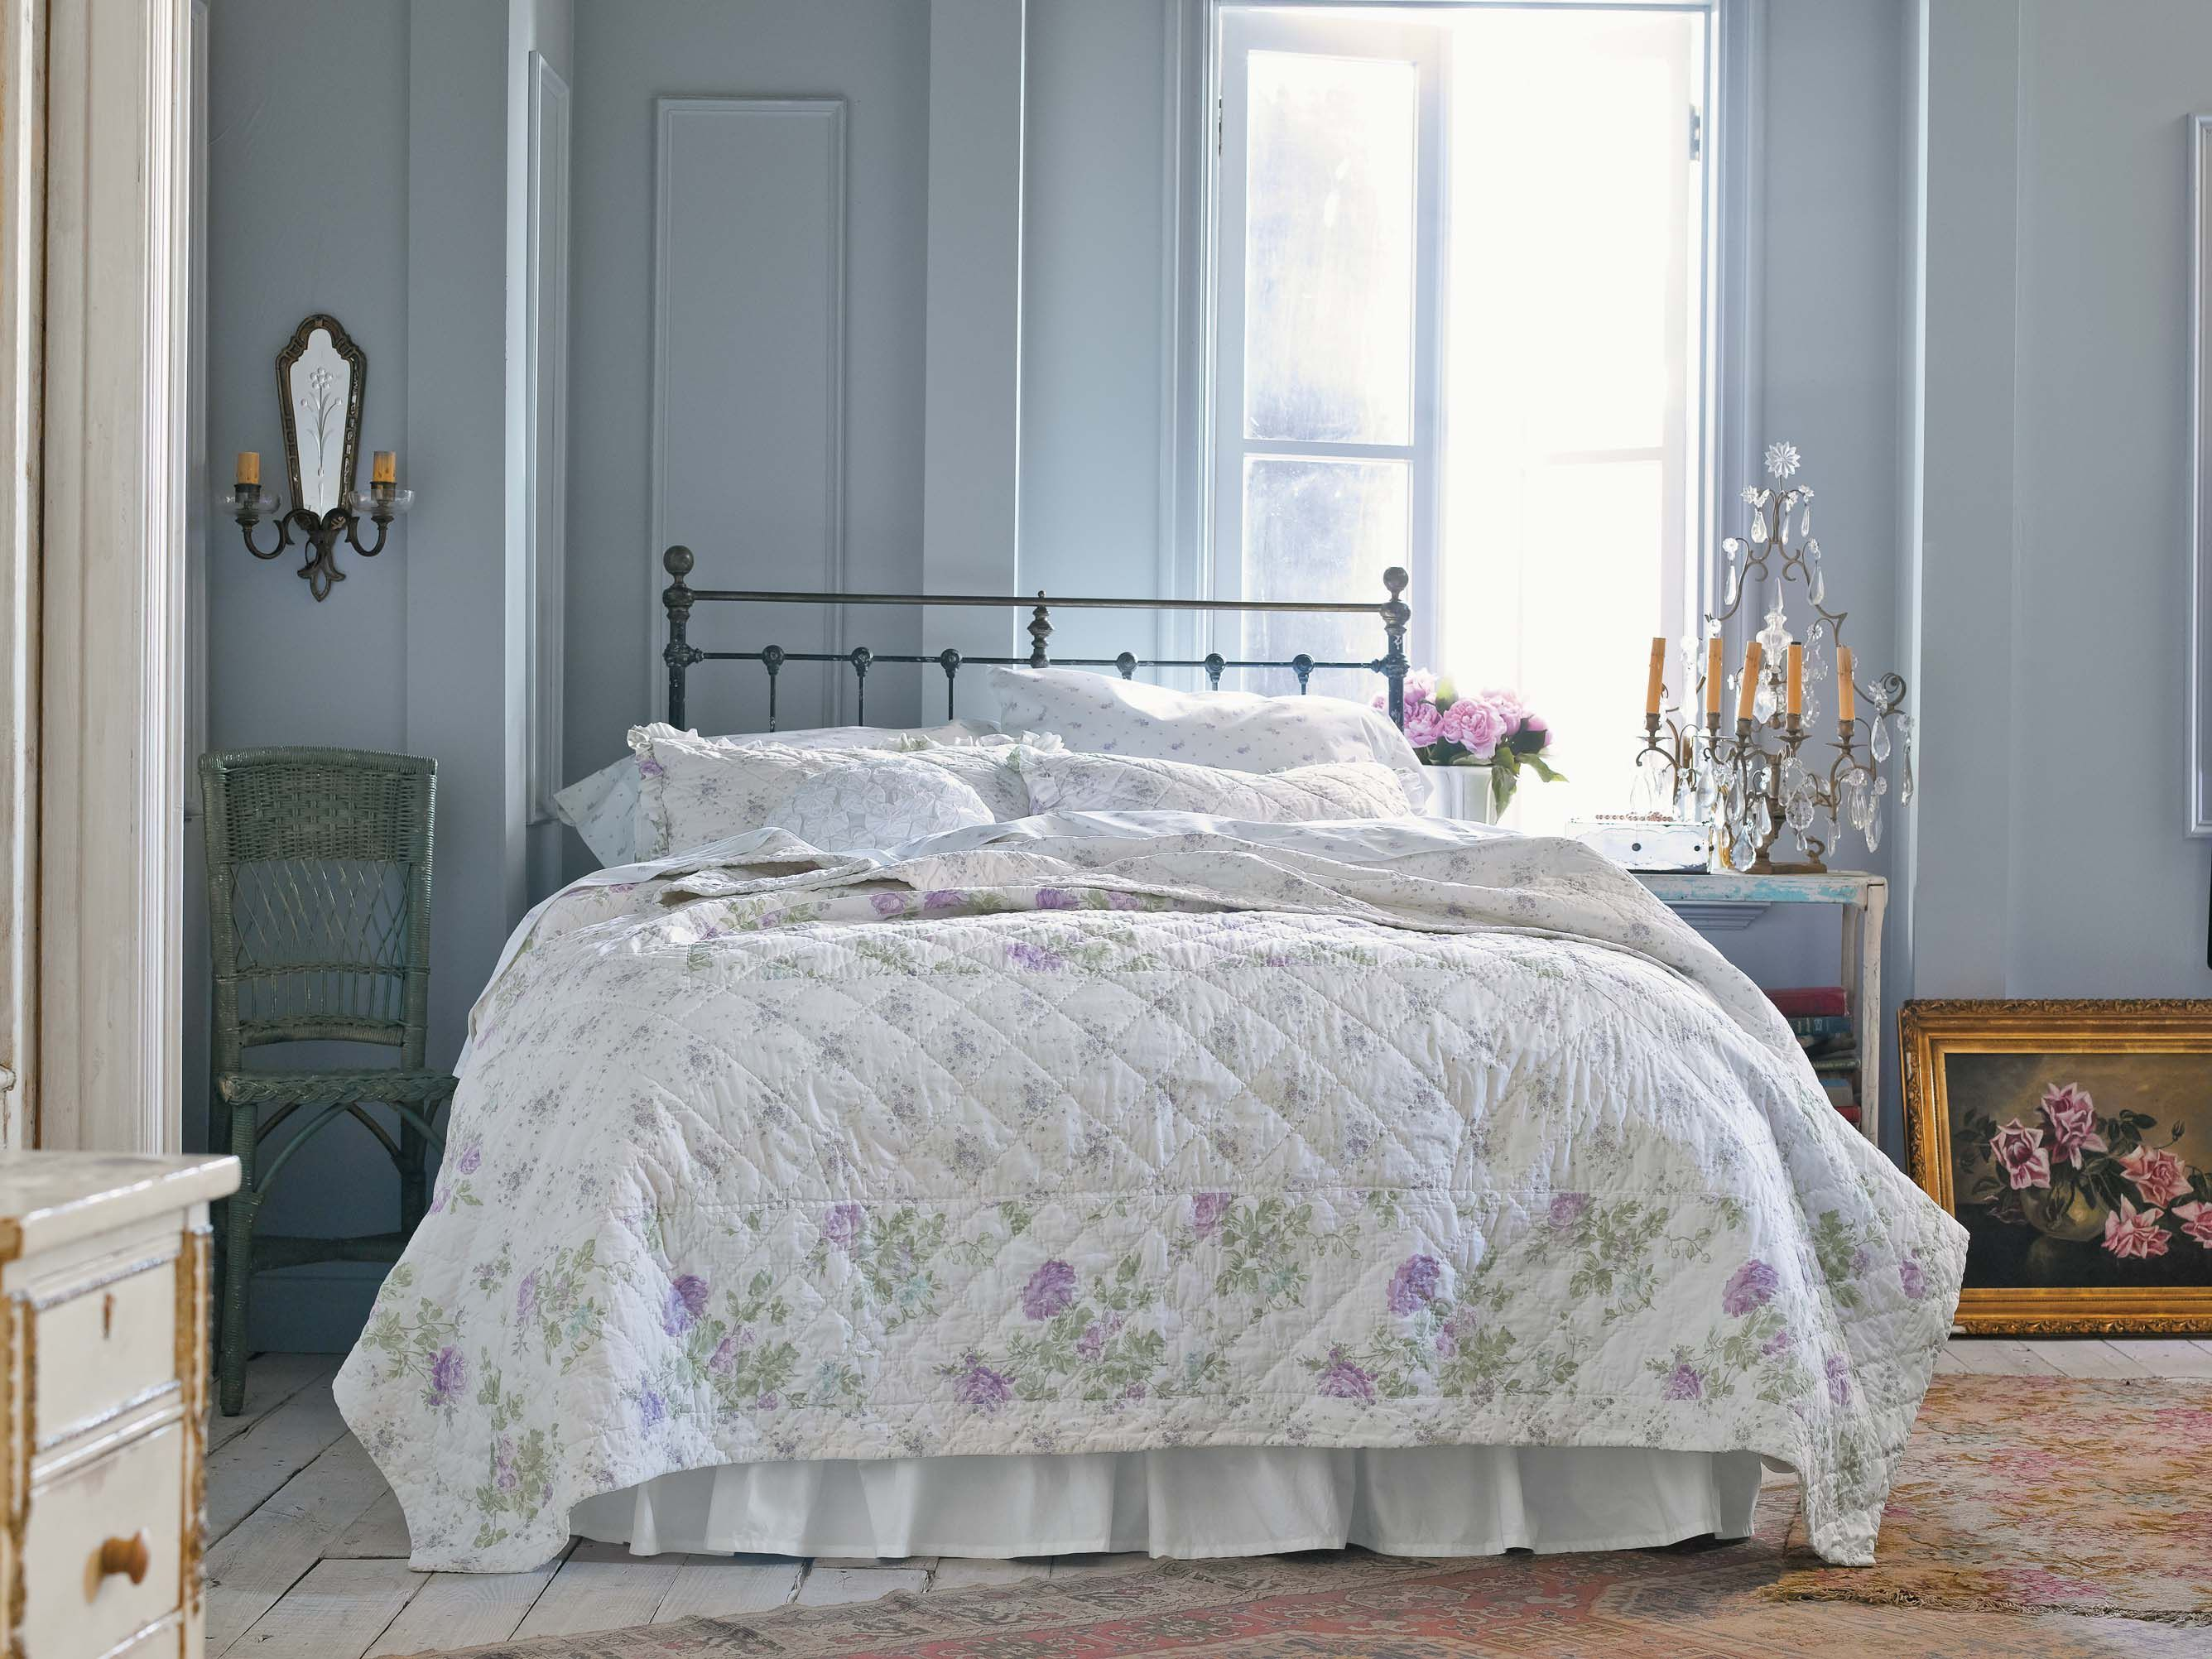 Great Simply Shabby Chic Lavender Rose Quilt $19.99   $119.99 At @Target Ttp://